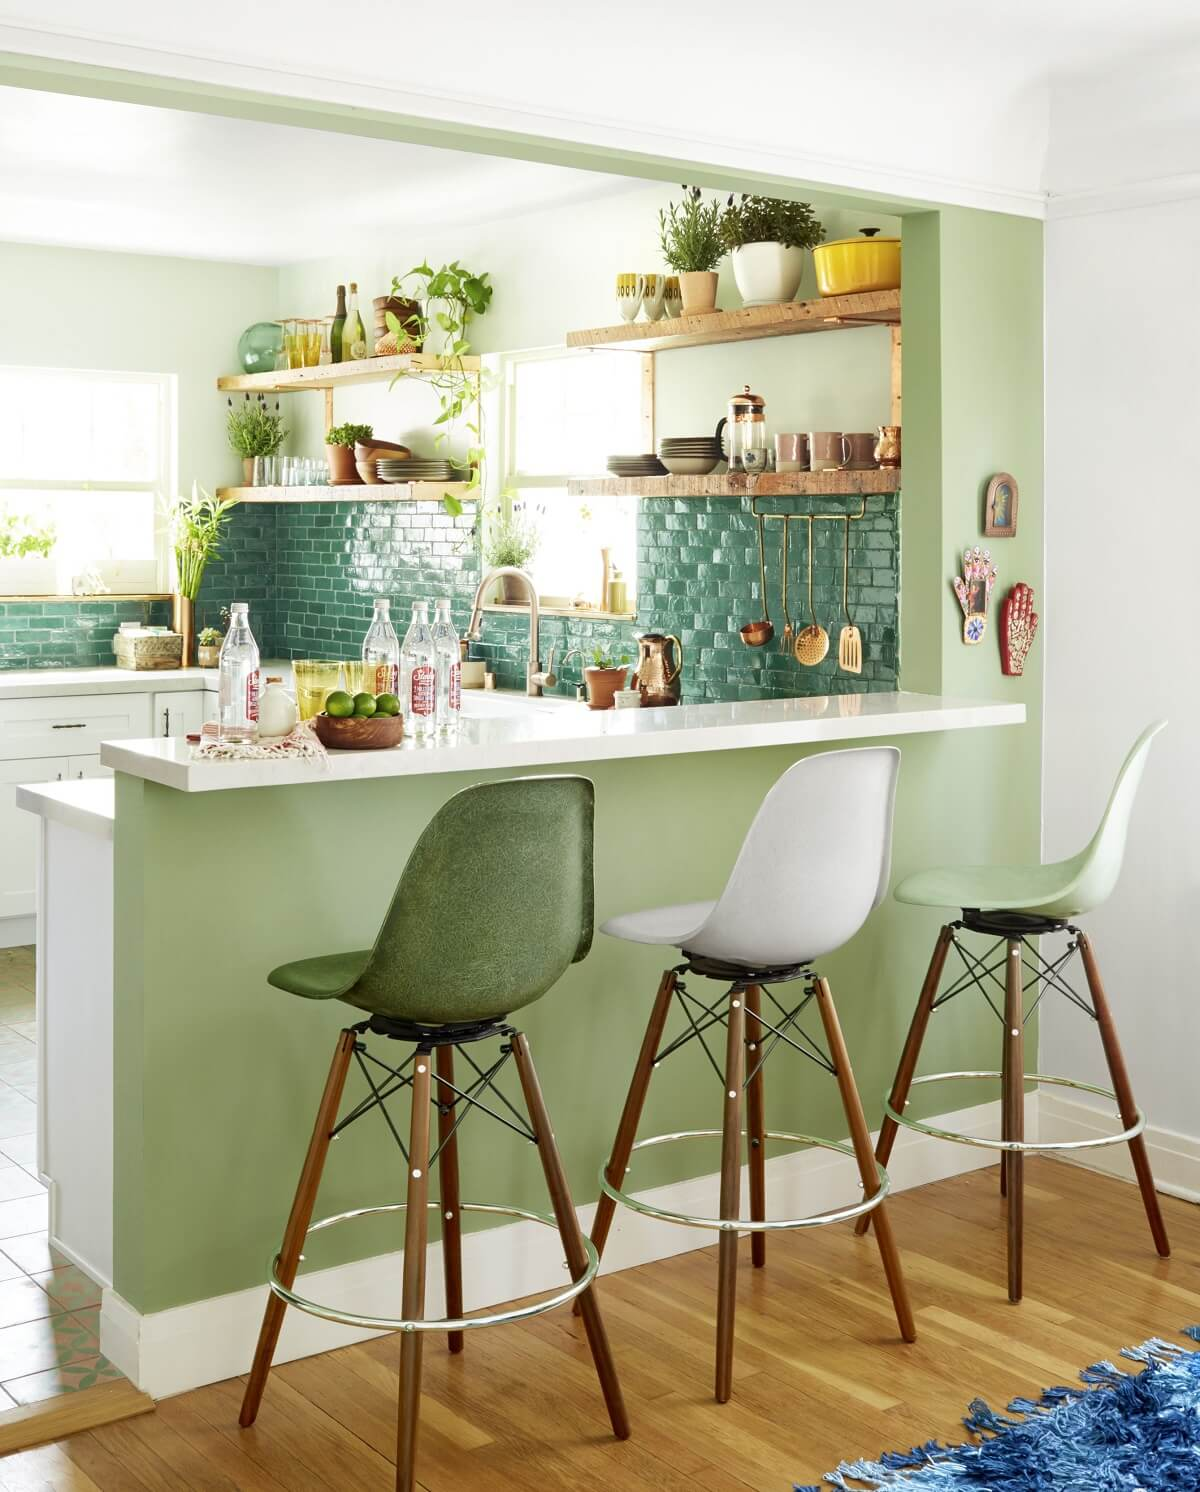 PPG-color-of-the-year-guacamole-color-trends-2022-nordroom